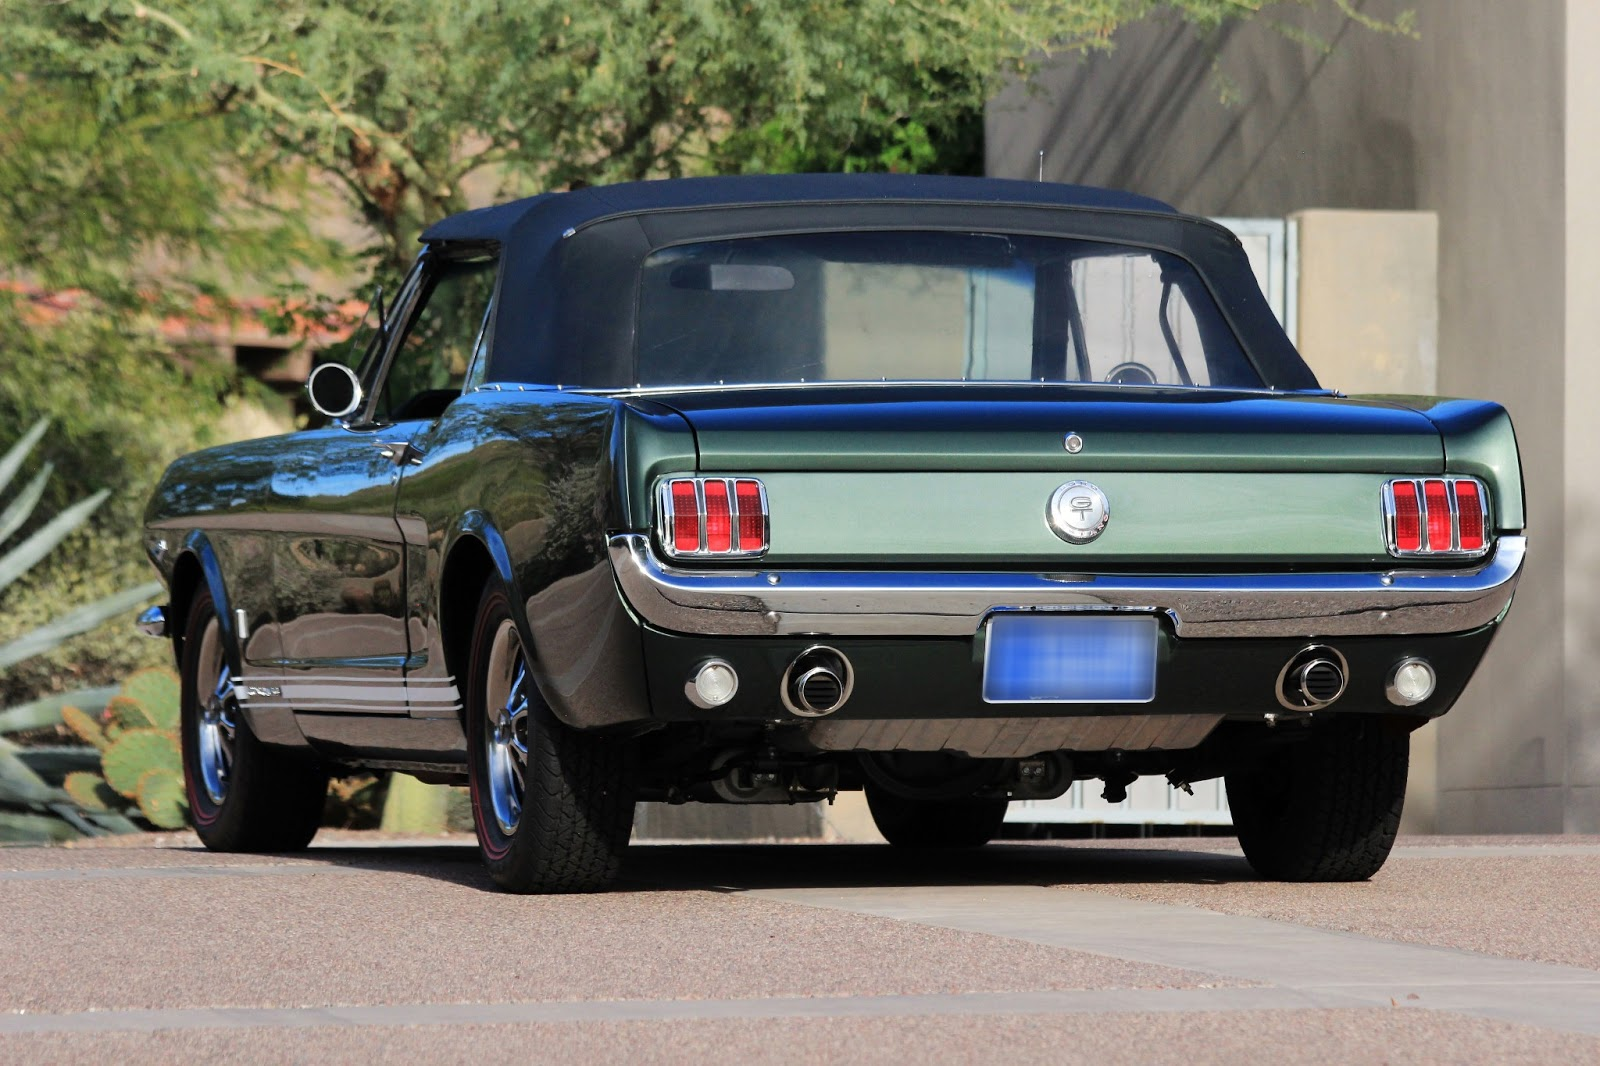 1966 mustang 289 hipo k code convertible for sale on www bringatrailer com · www virginiaclassicmustang com